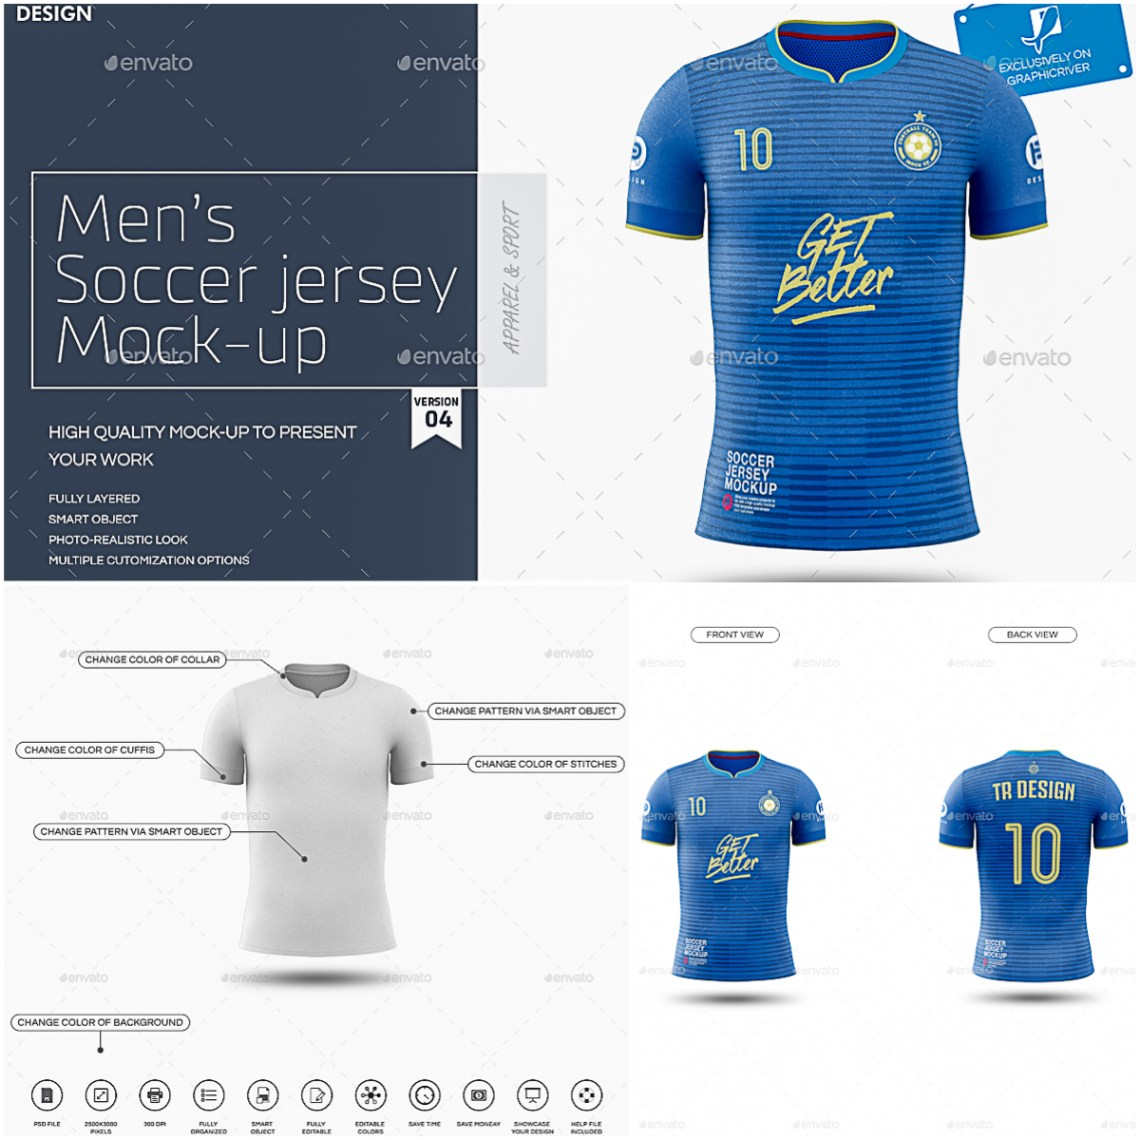 Download Men's Soccer Jersey Mockup | Free download